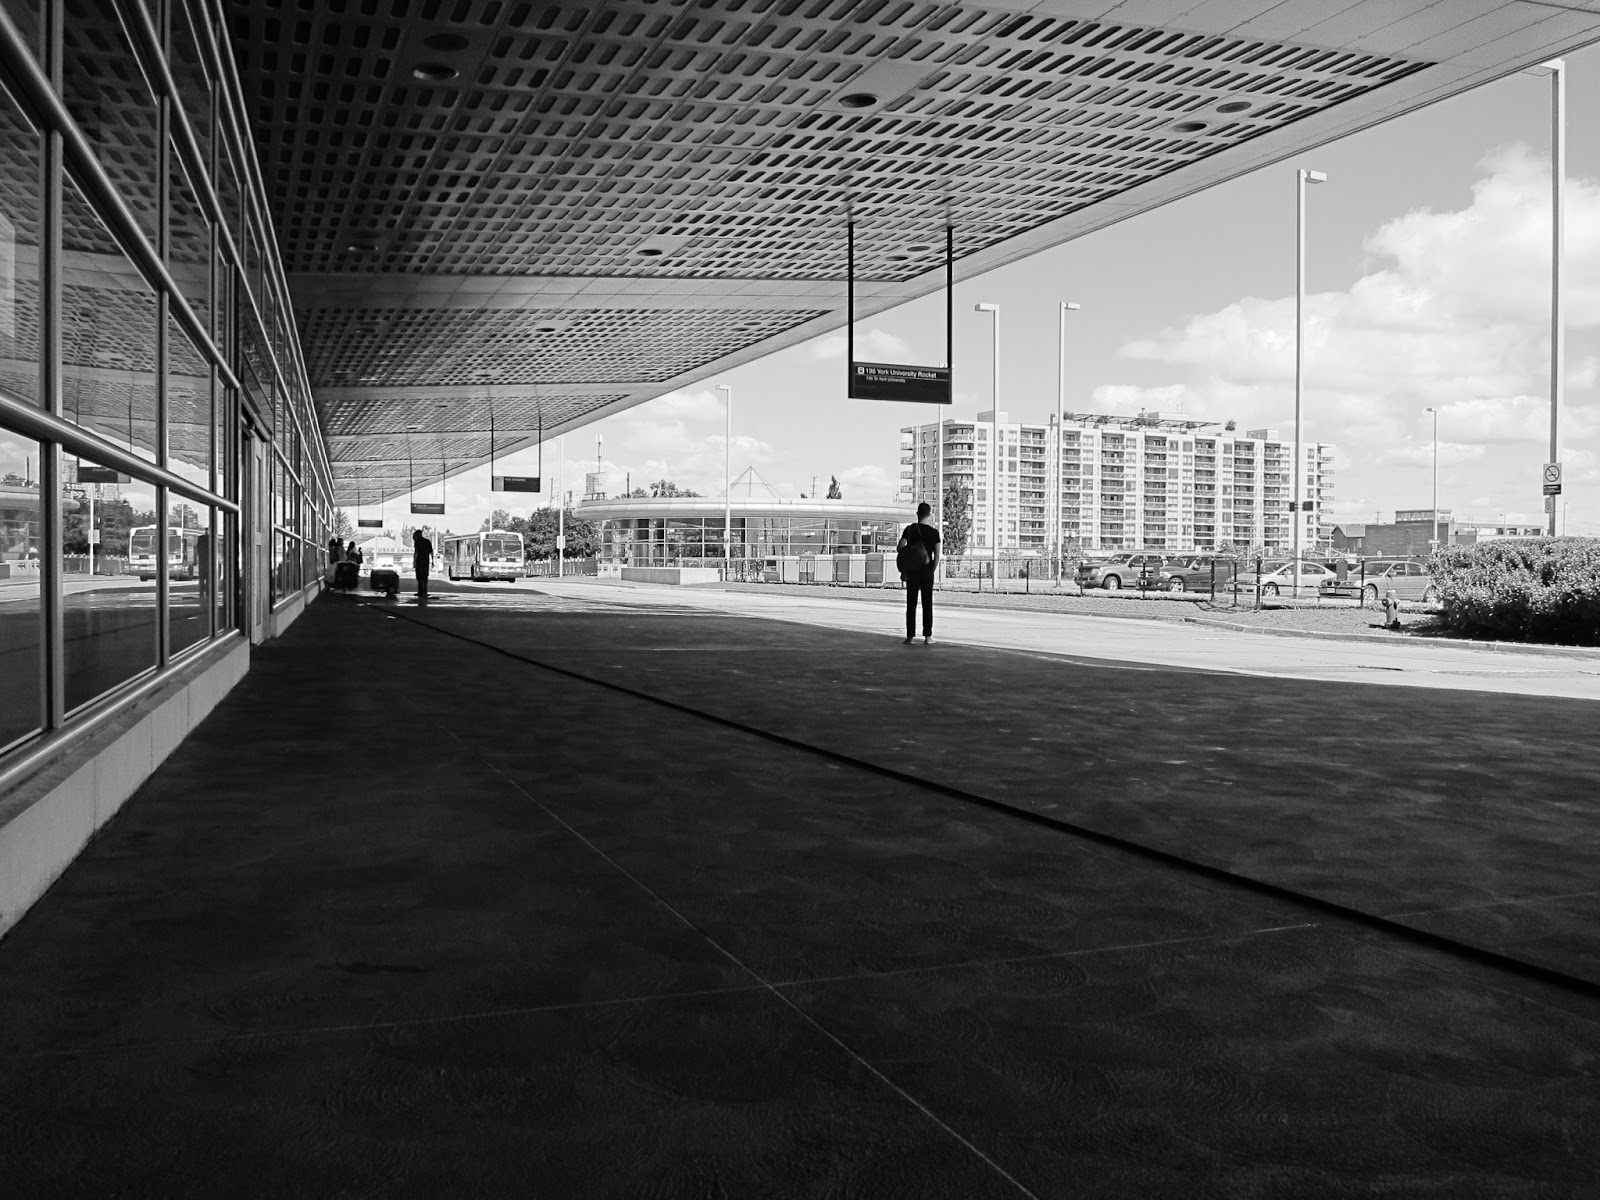 Photo: Bus platform, Downsview Station, Toronto